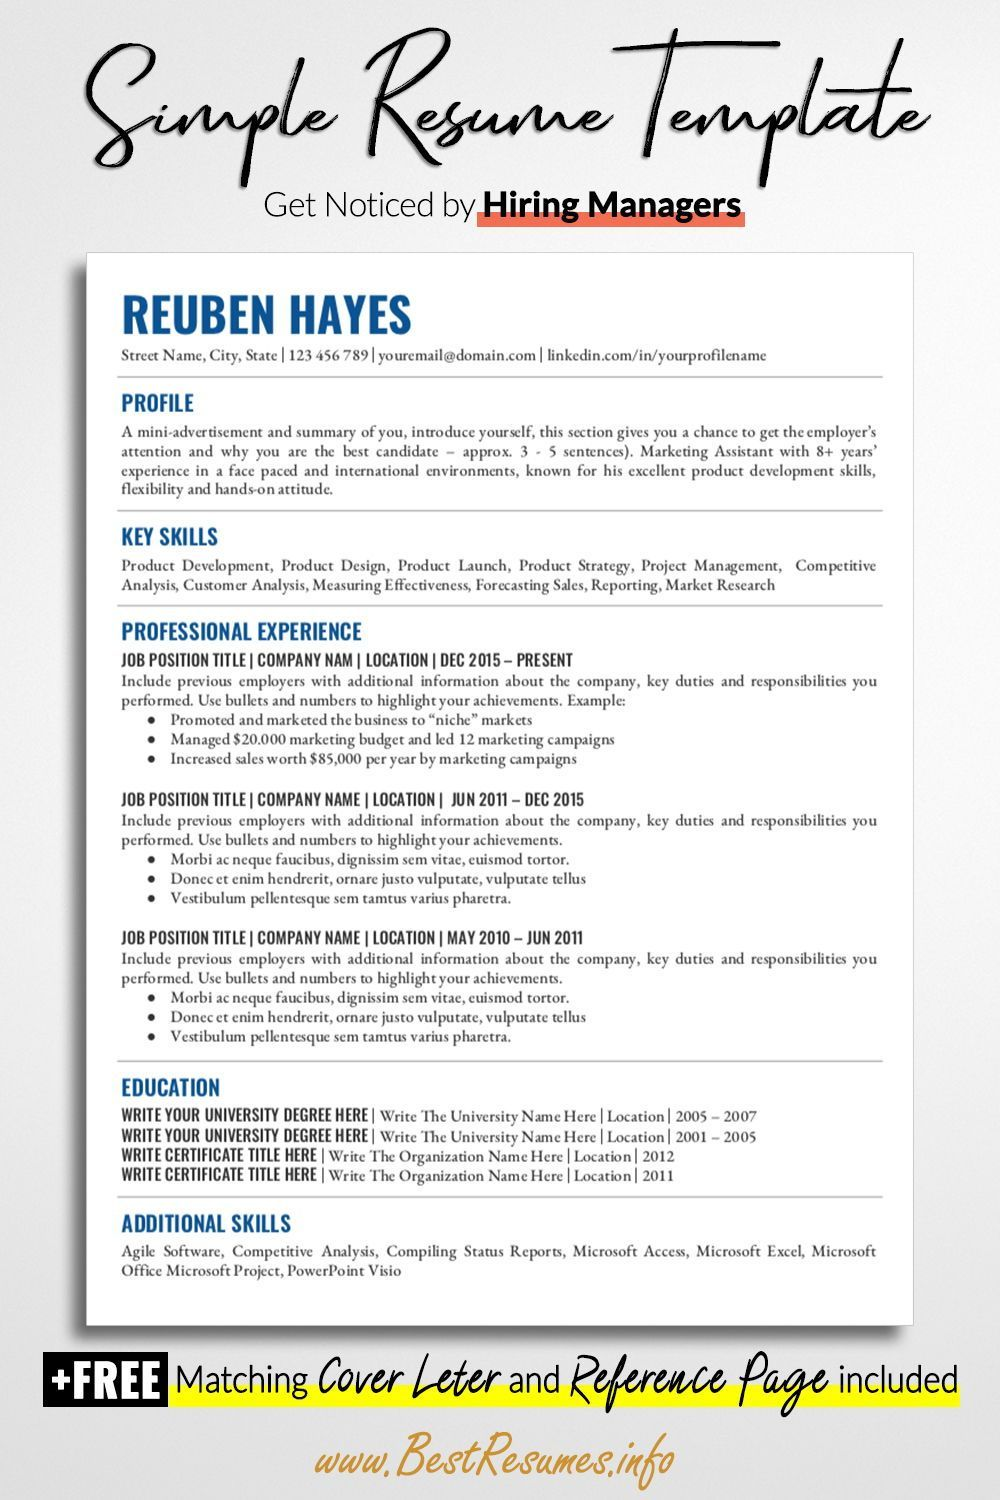 Did you know that you can have your new resume ready in